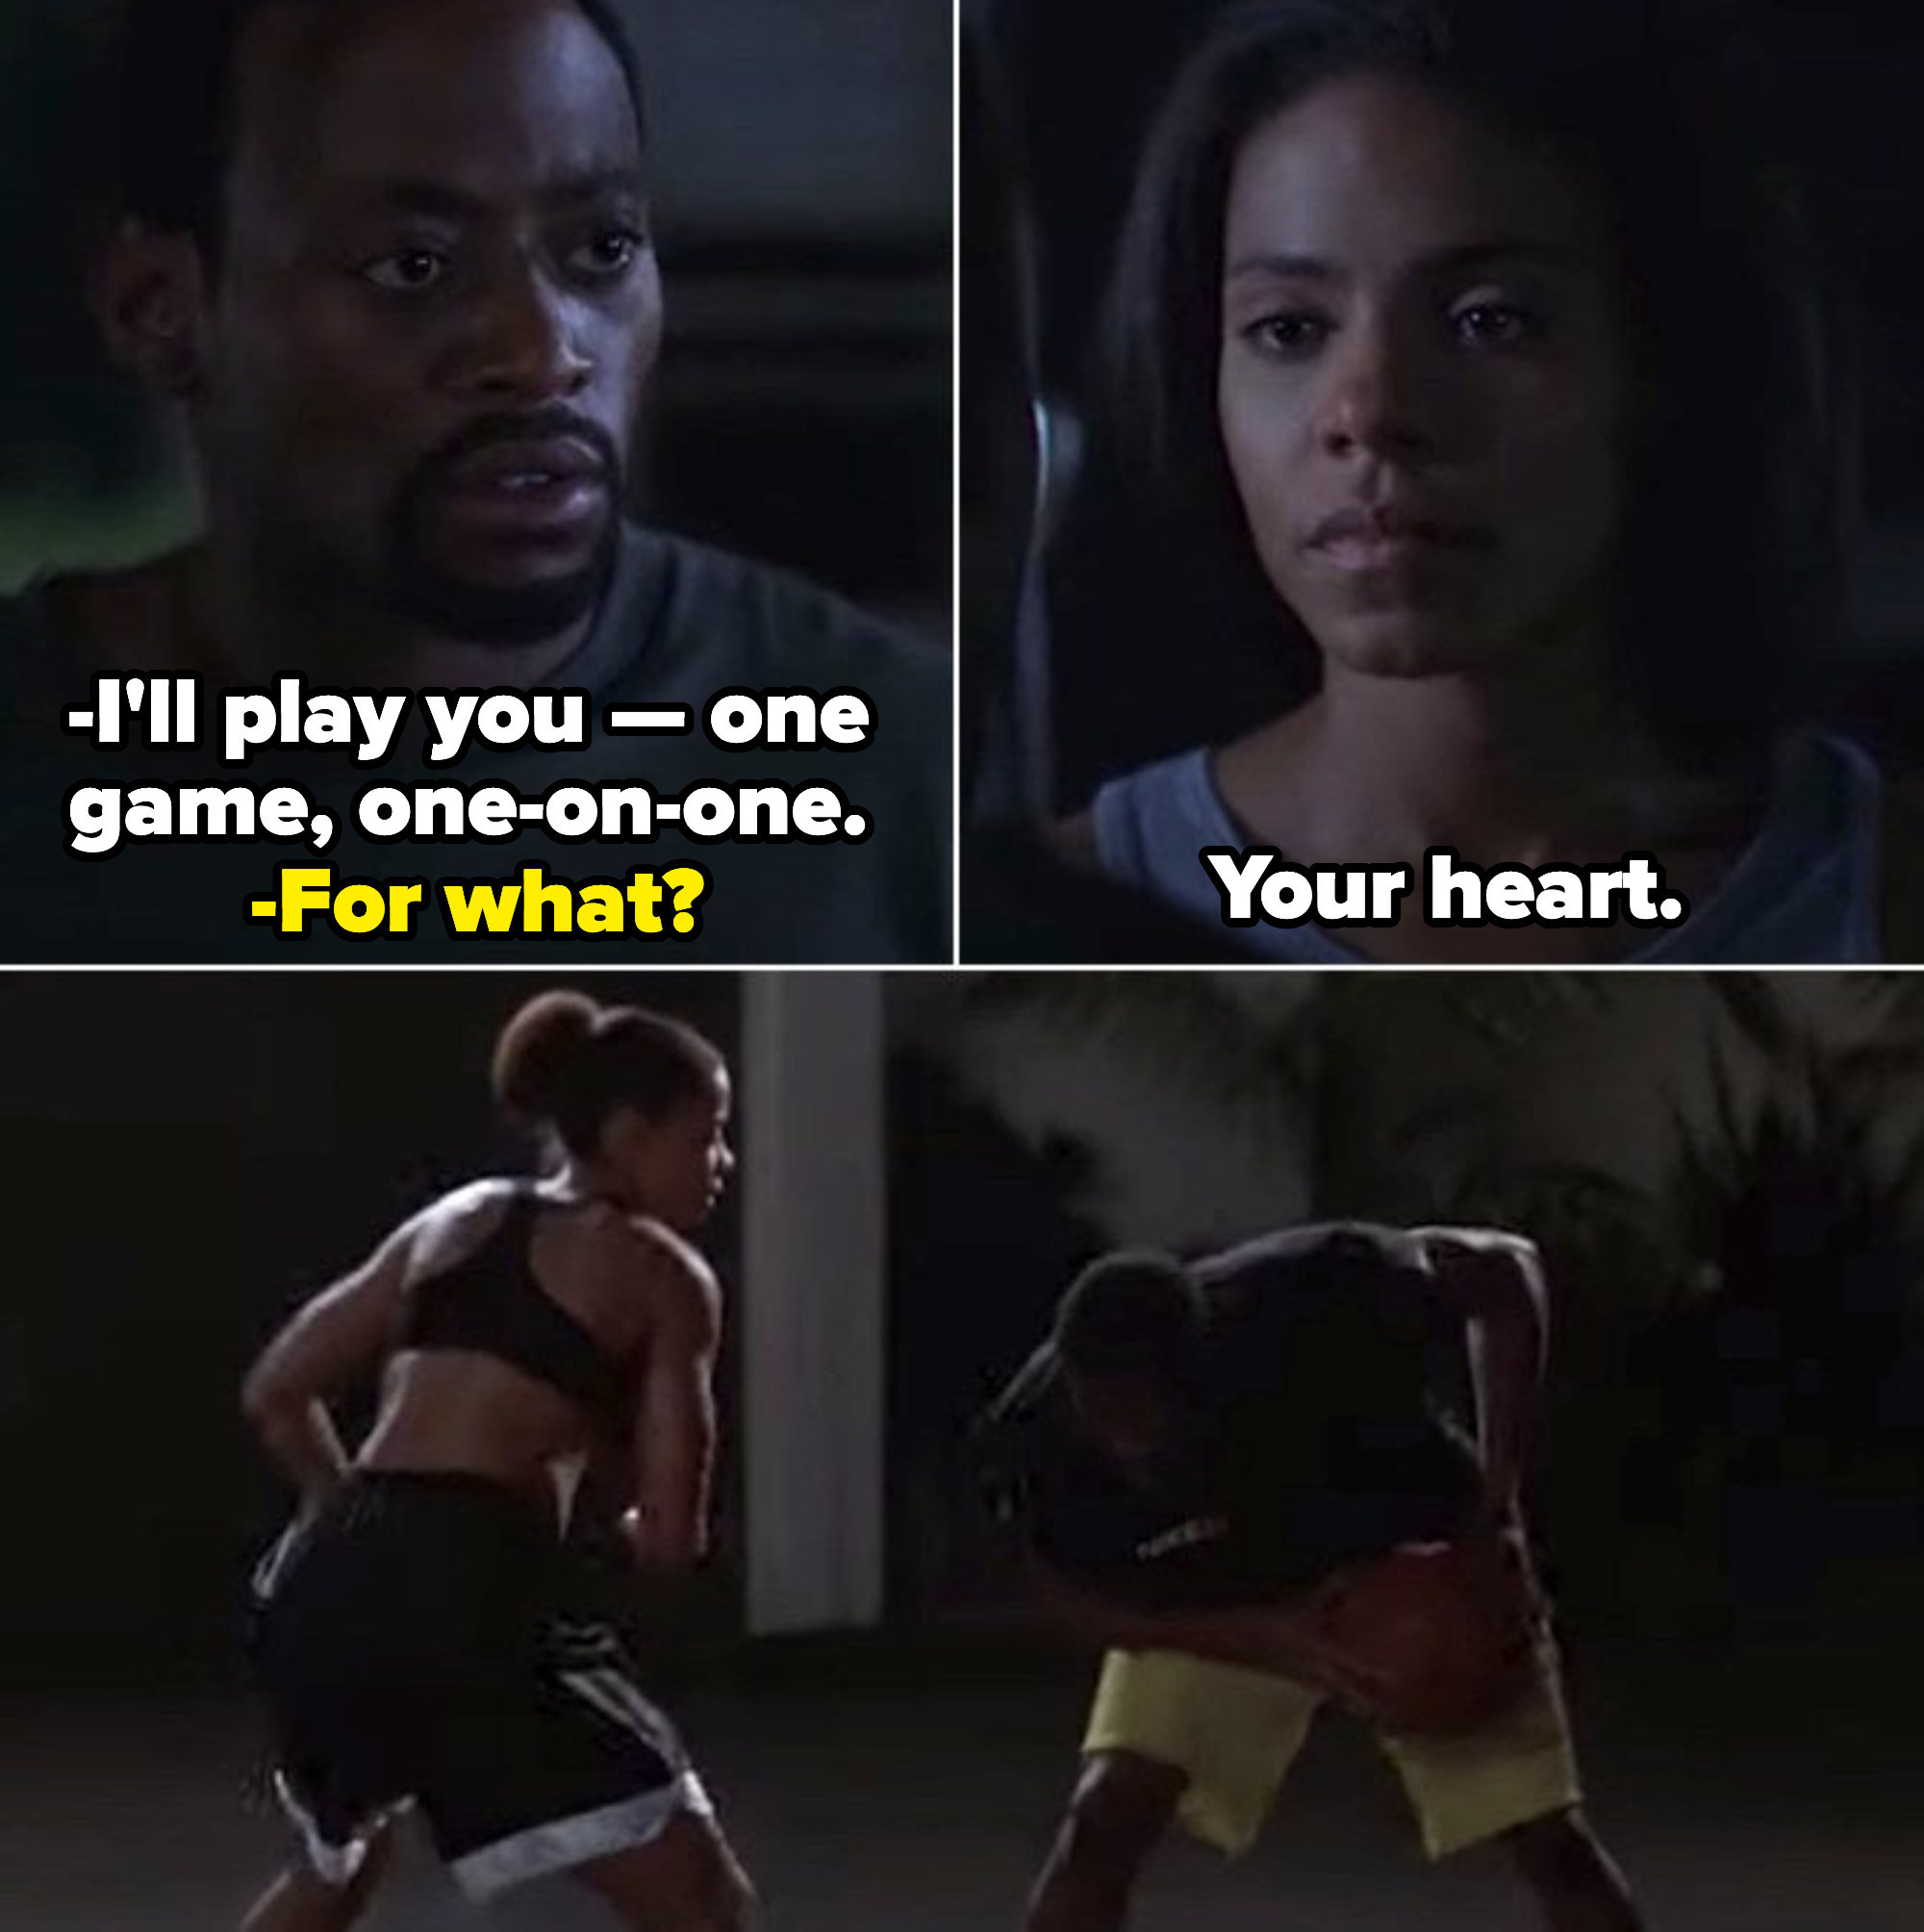 Monica challenging Quincy to play a game of one-on-one for his heart